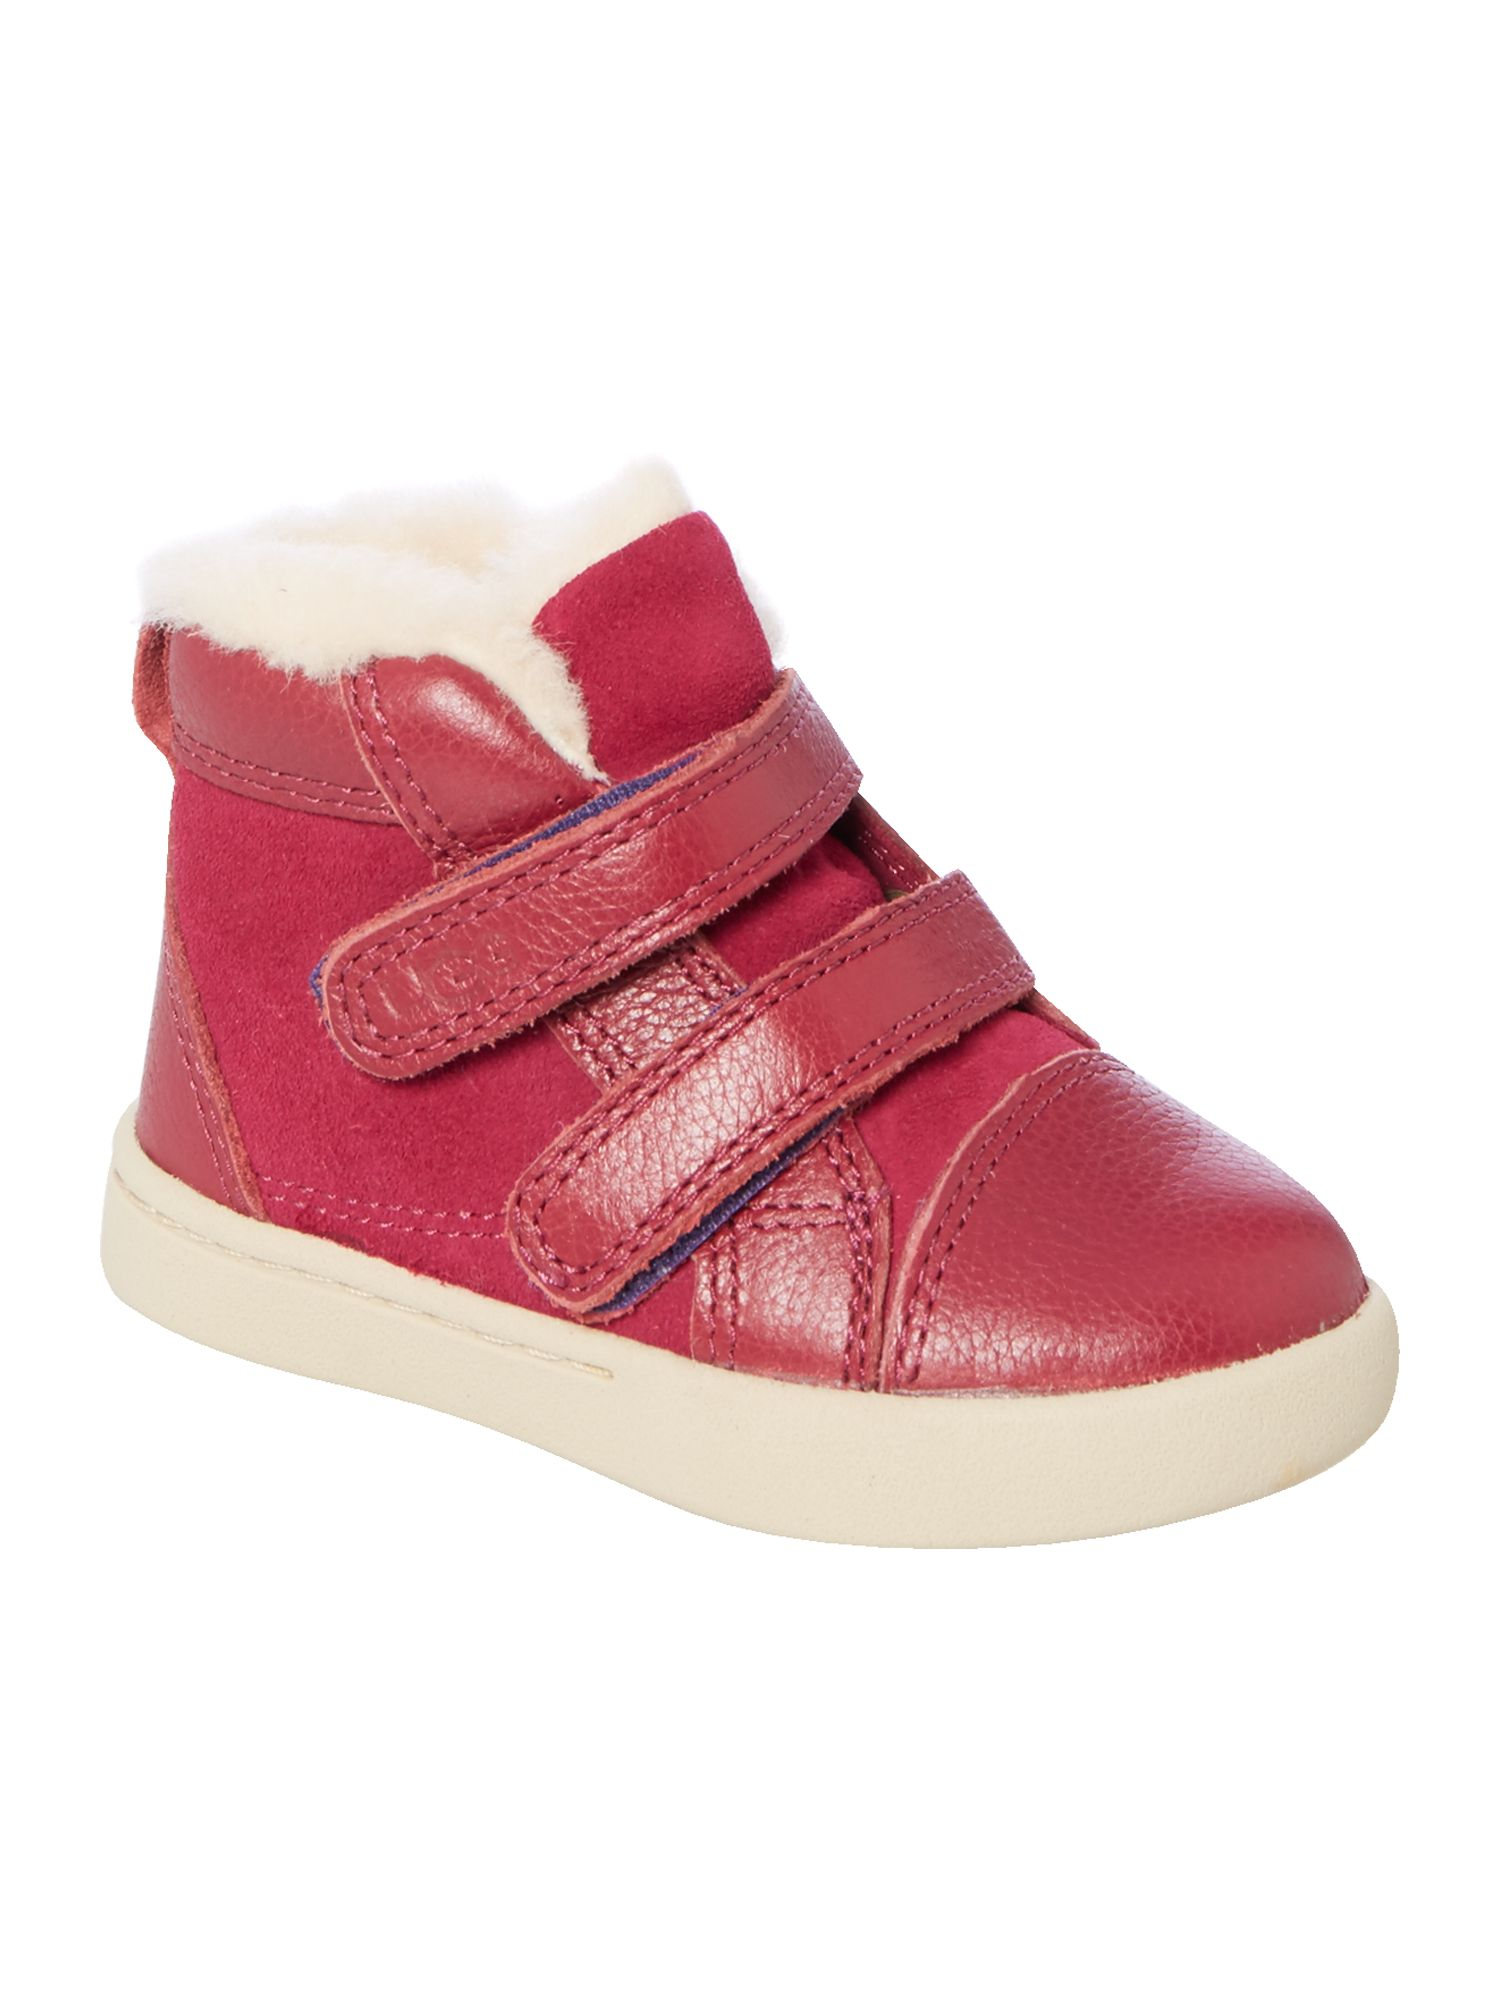 buy cheap uggs boots online